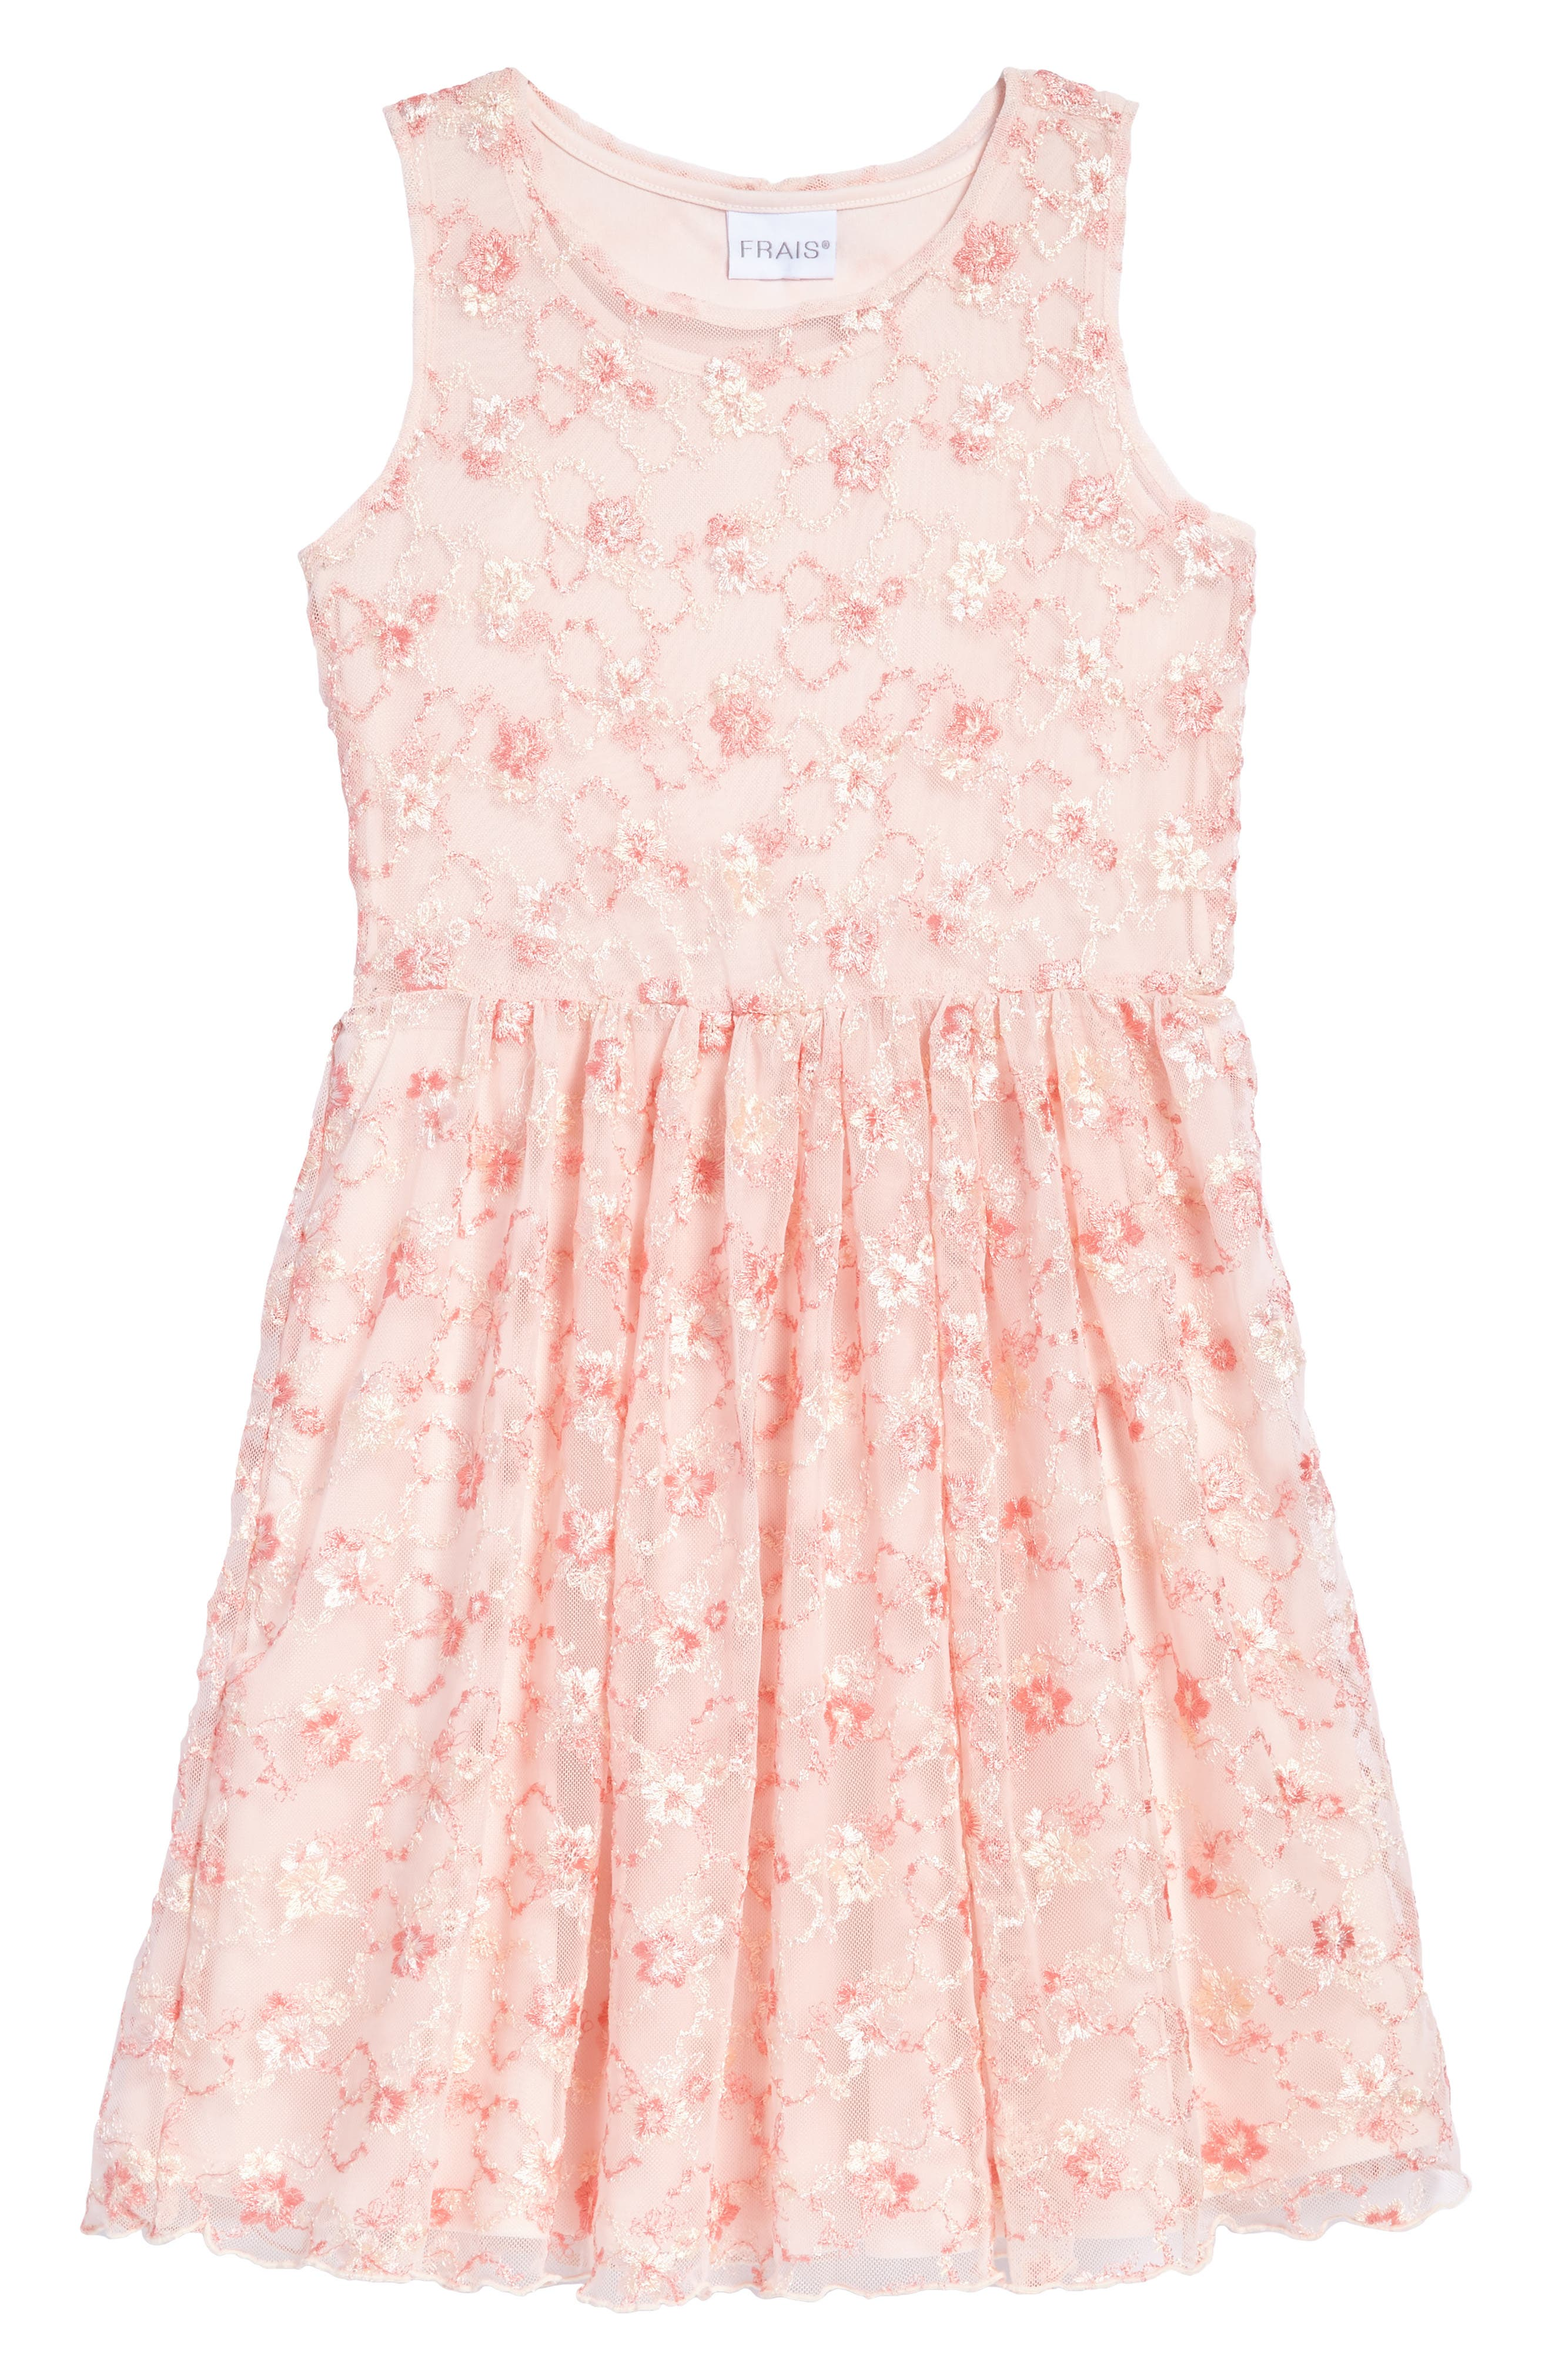 Floral Embroidered Tulle Dress,                             Main thumbnail 1, color,                             680